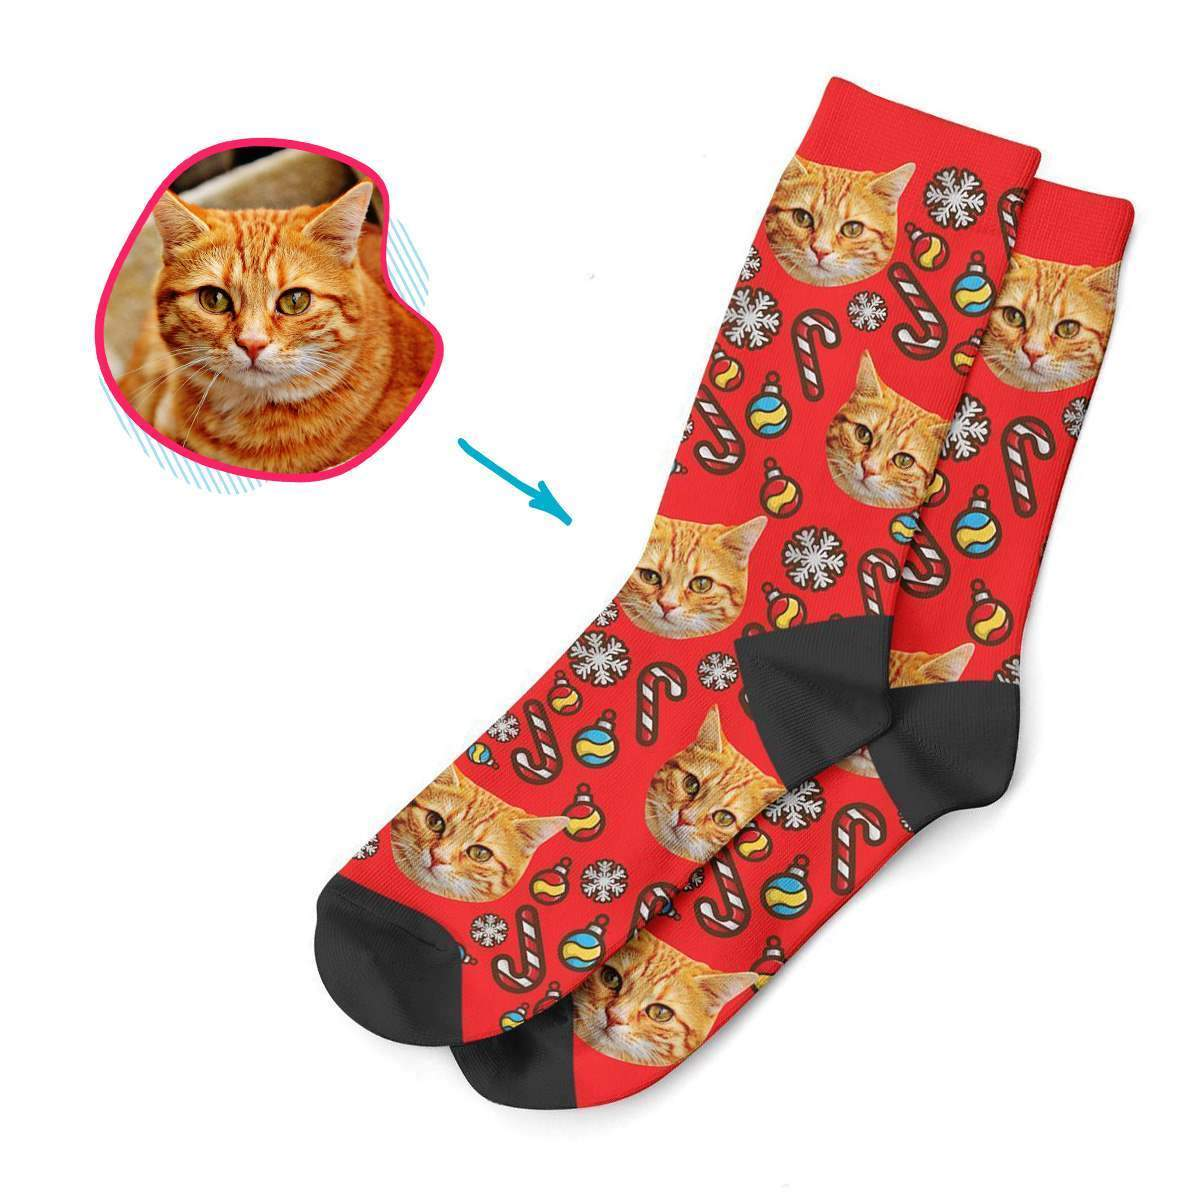 red Christmas Tree Toy socks personalized with photo of face printed on them